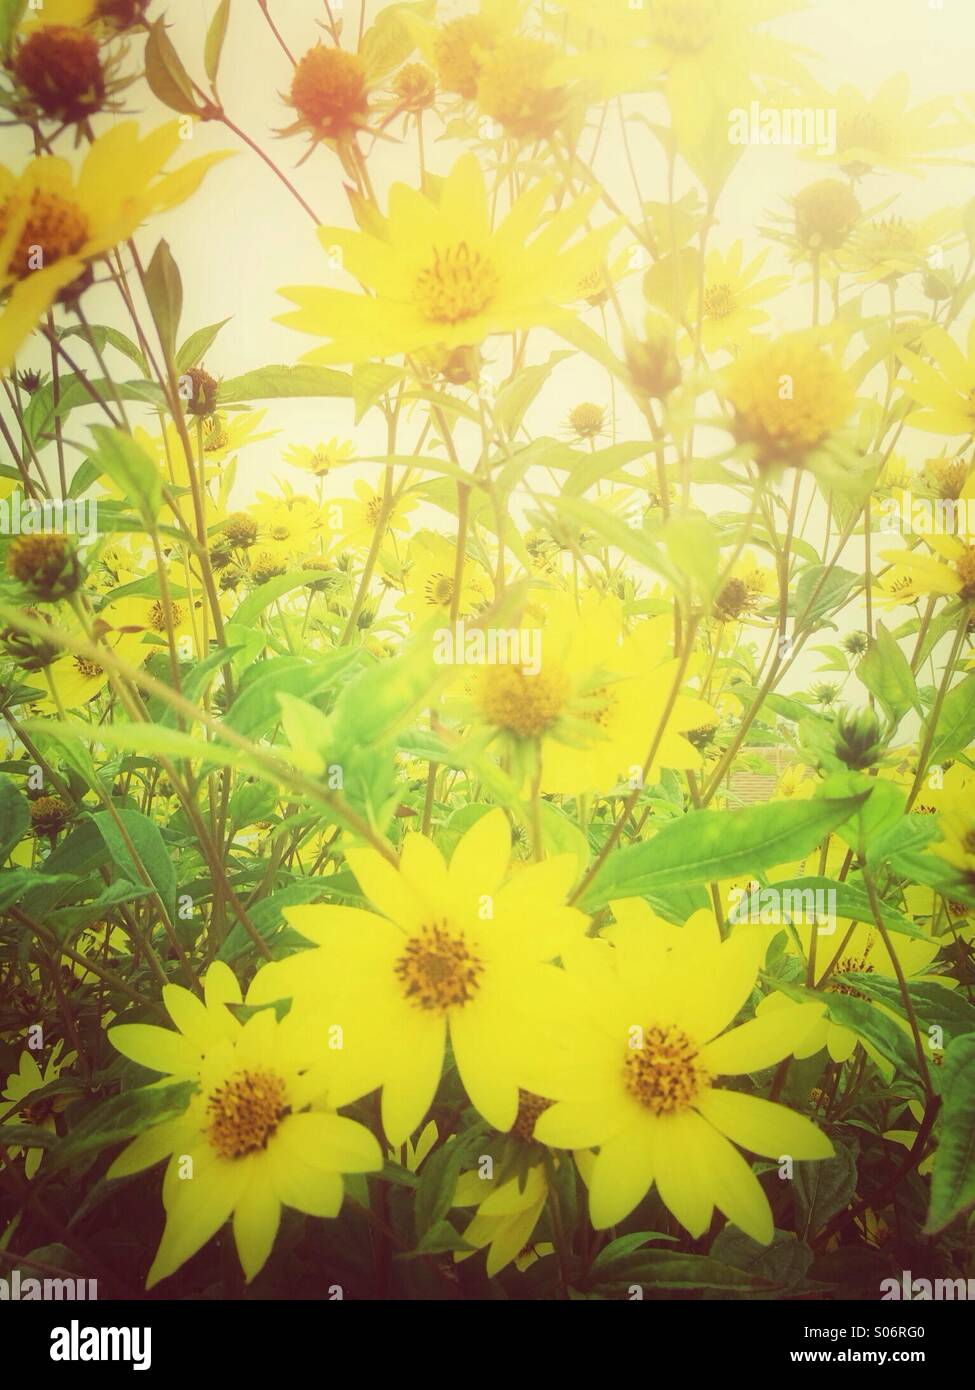 Yellow daisy flowers - Stock Image